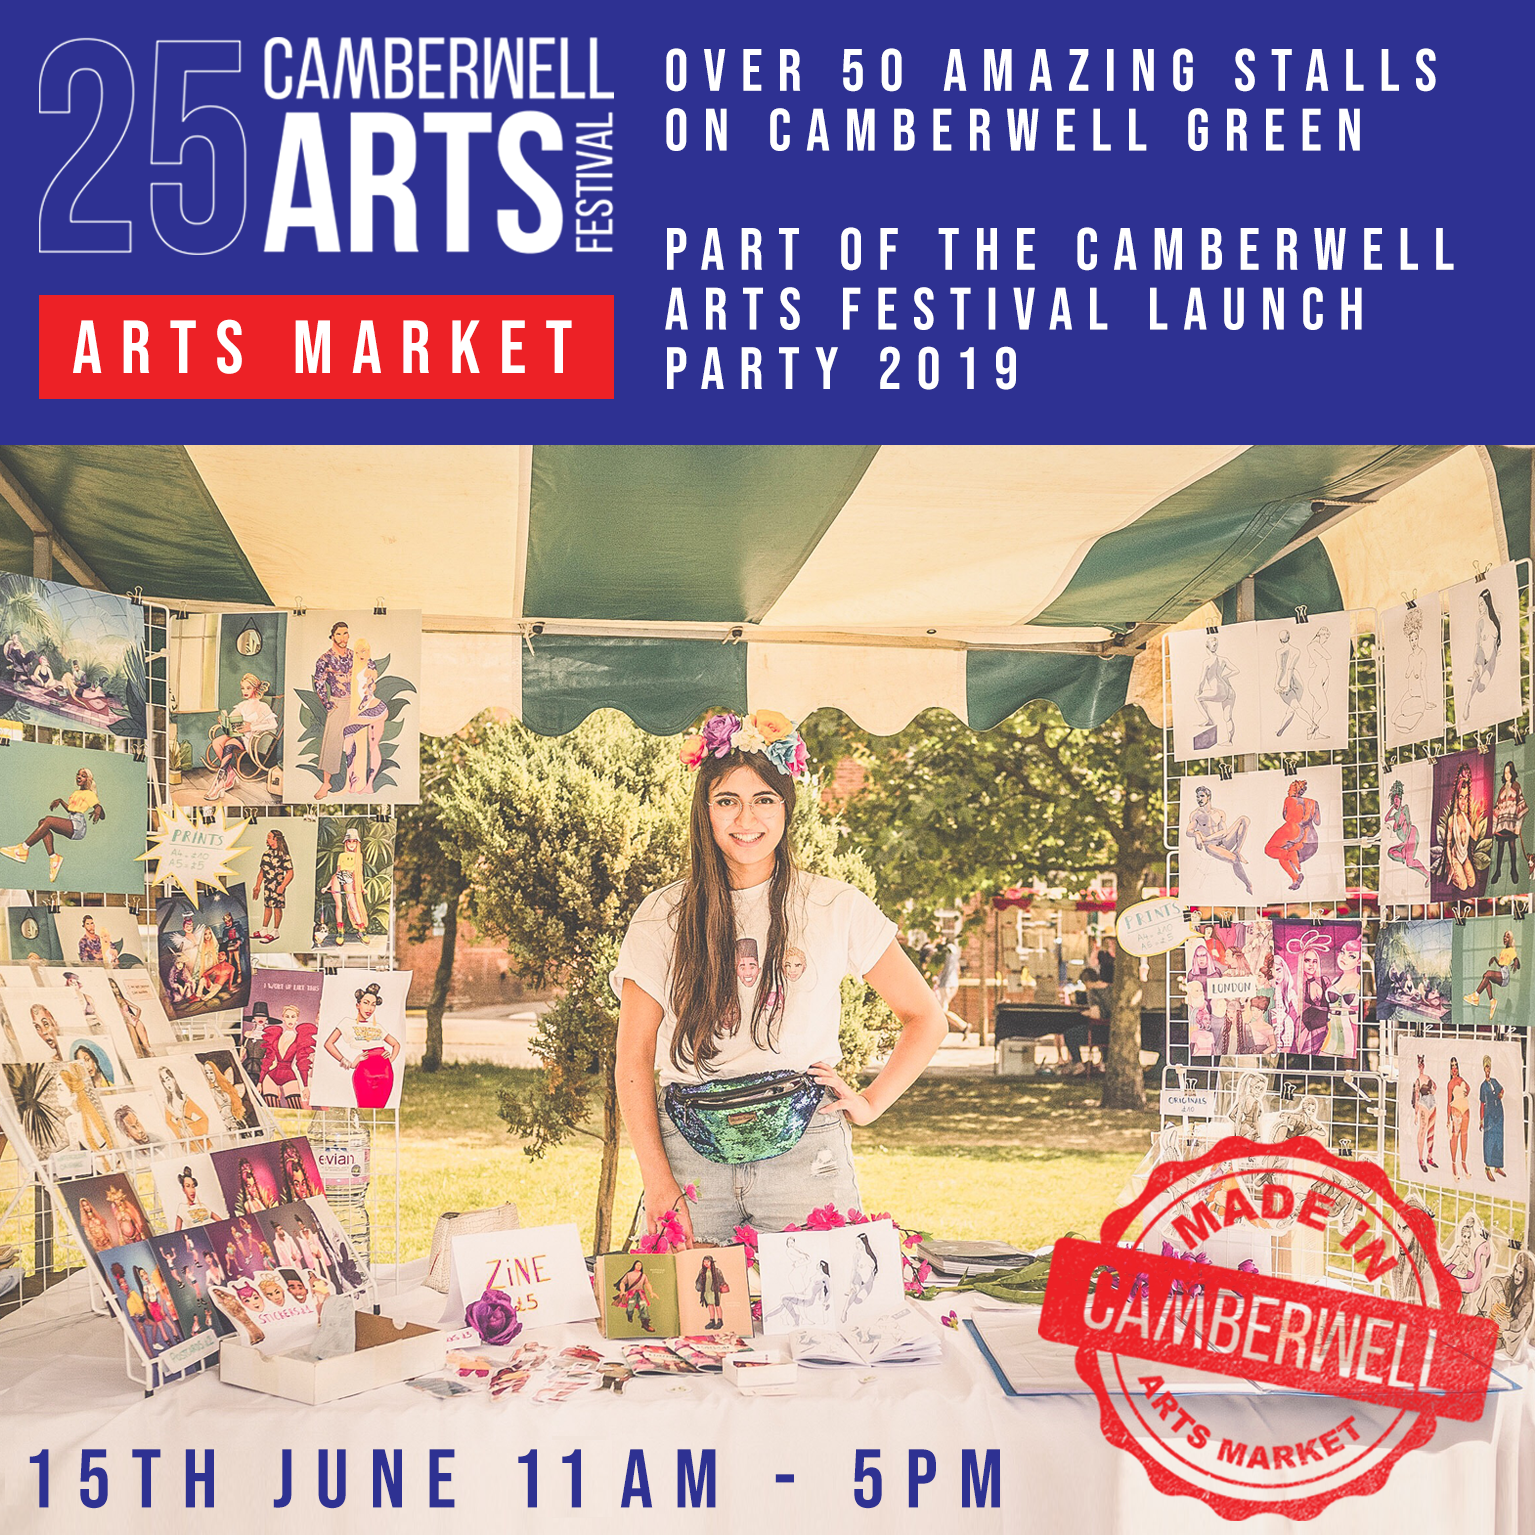 Made in Camberwell Arts Market - 11.00 - 17.00Camberwell Green, SE5 7AFBrowse and buy from over 50 local makers, offering an exciting array of art, design and creative talent for all tastes and budgets.FREE